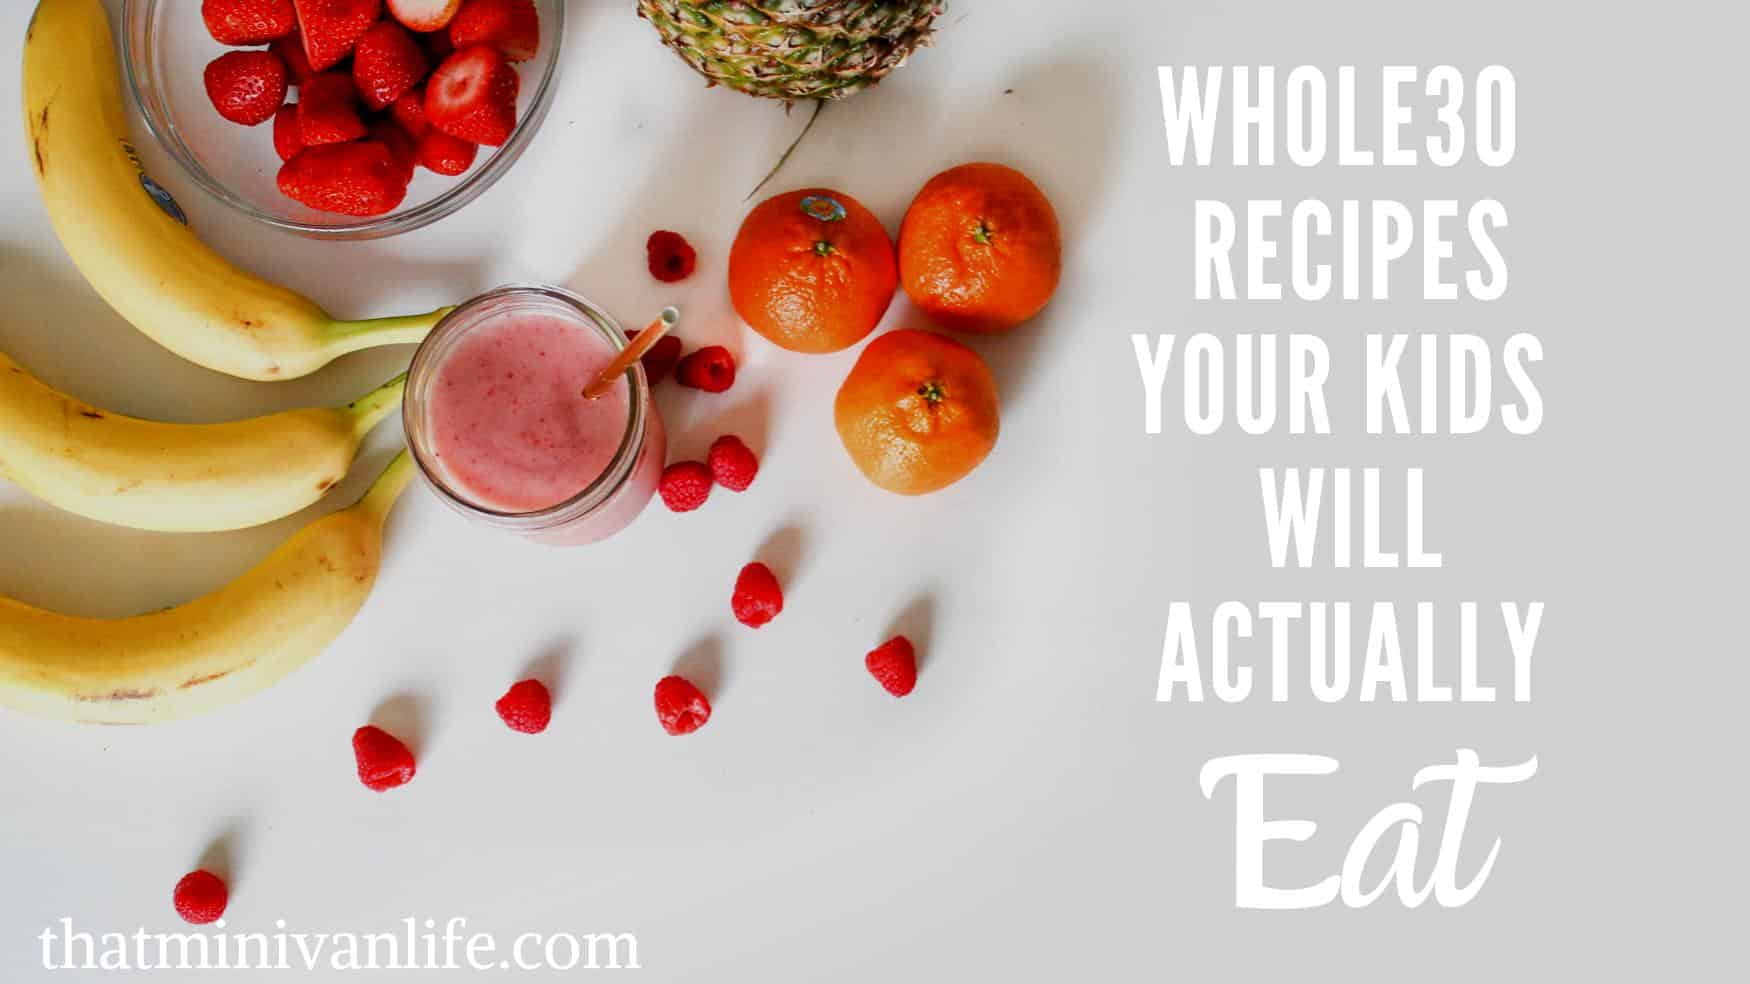 Whole30 foods your kids will eat